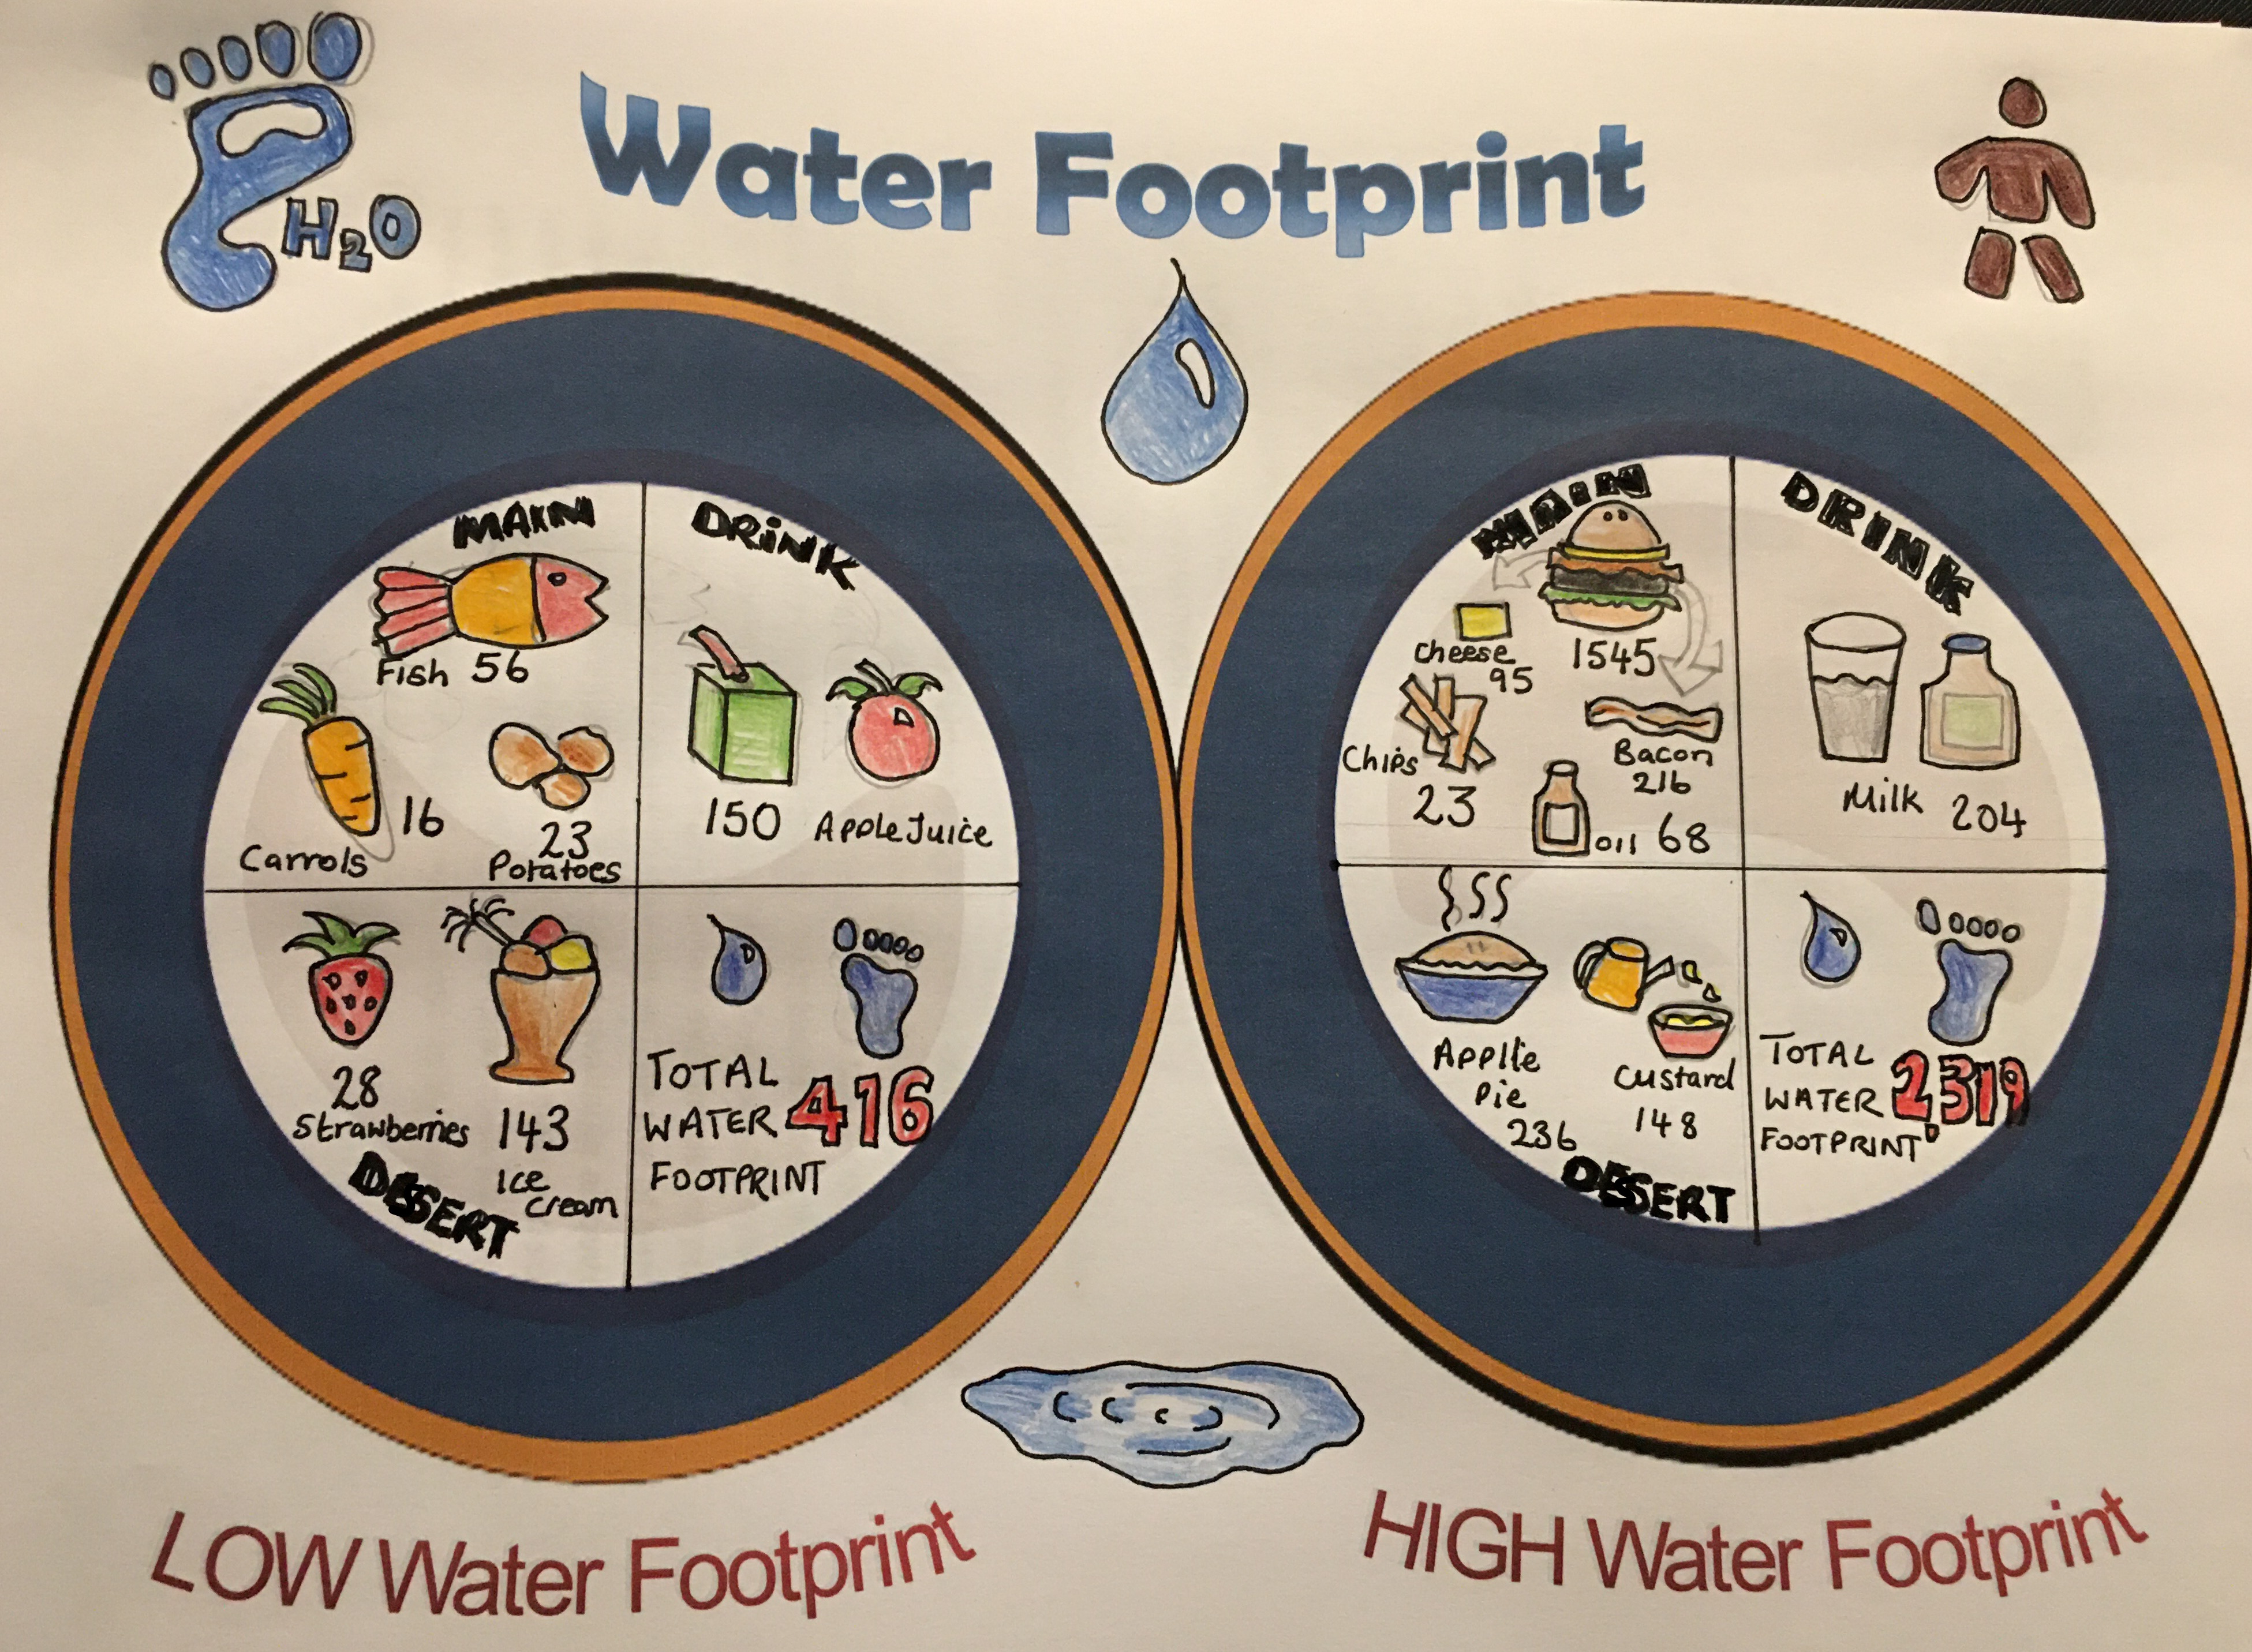 Year 9 pupil from Foyle College water footprint menu